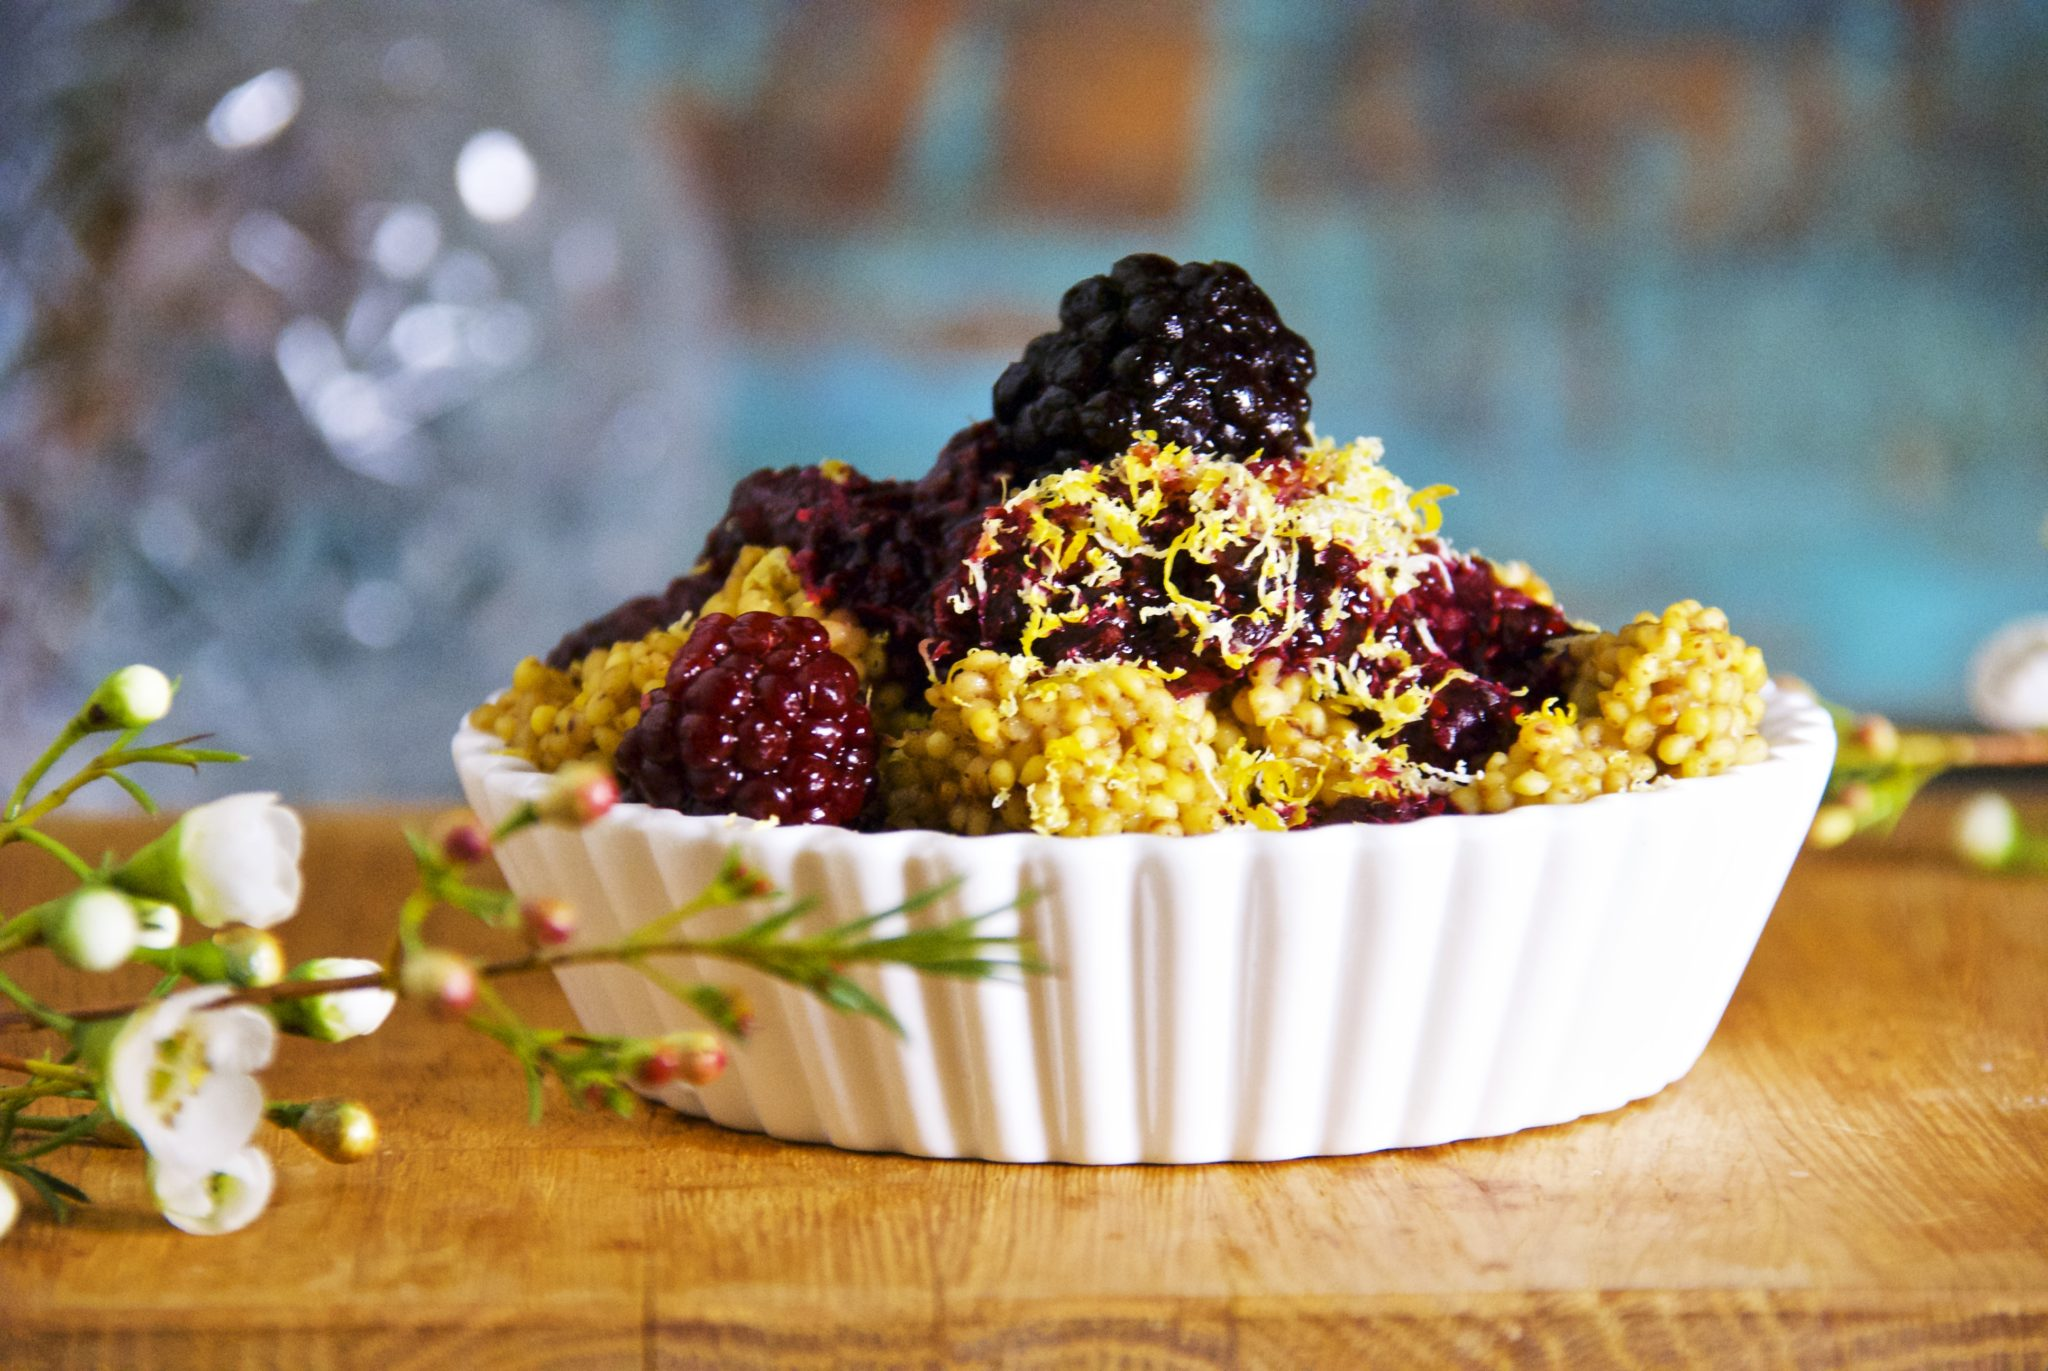 Ginger Toasted Millet with Blackberry Chia Sauce